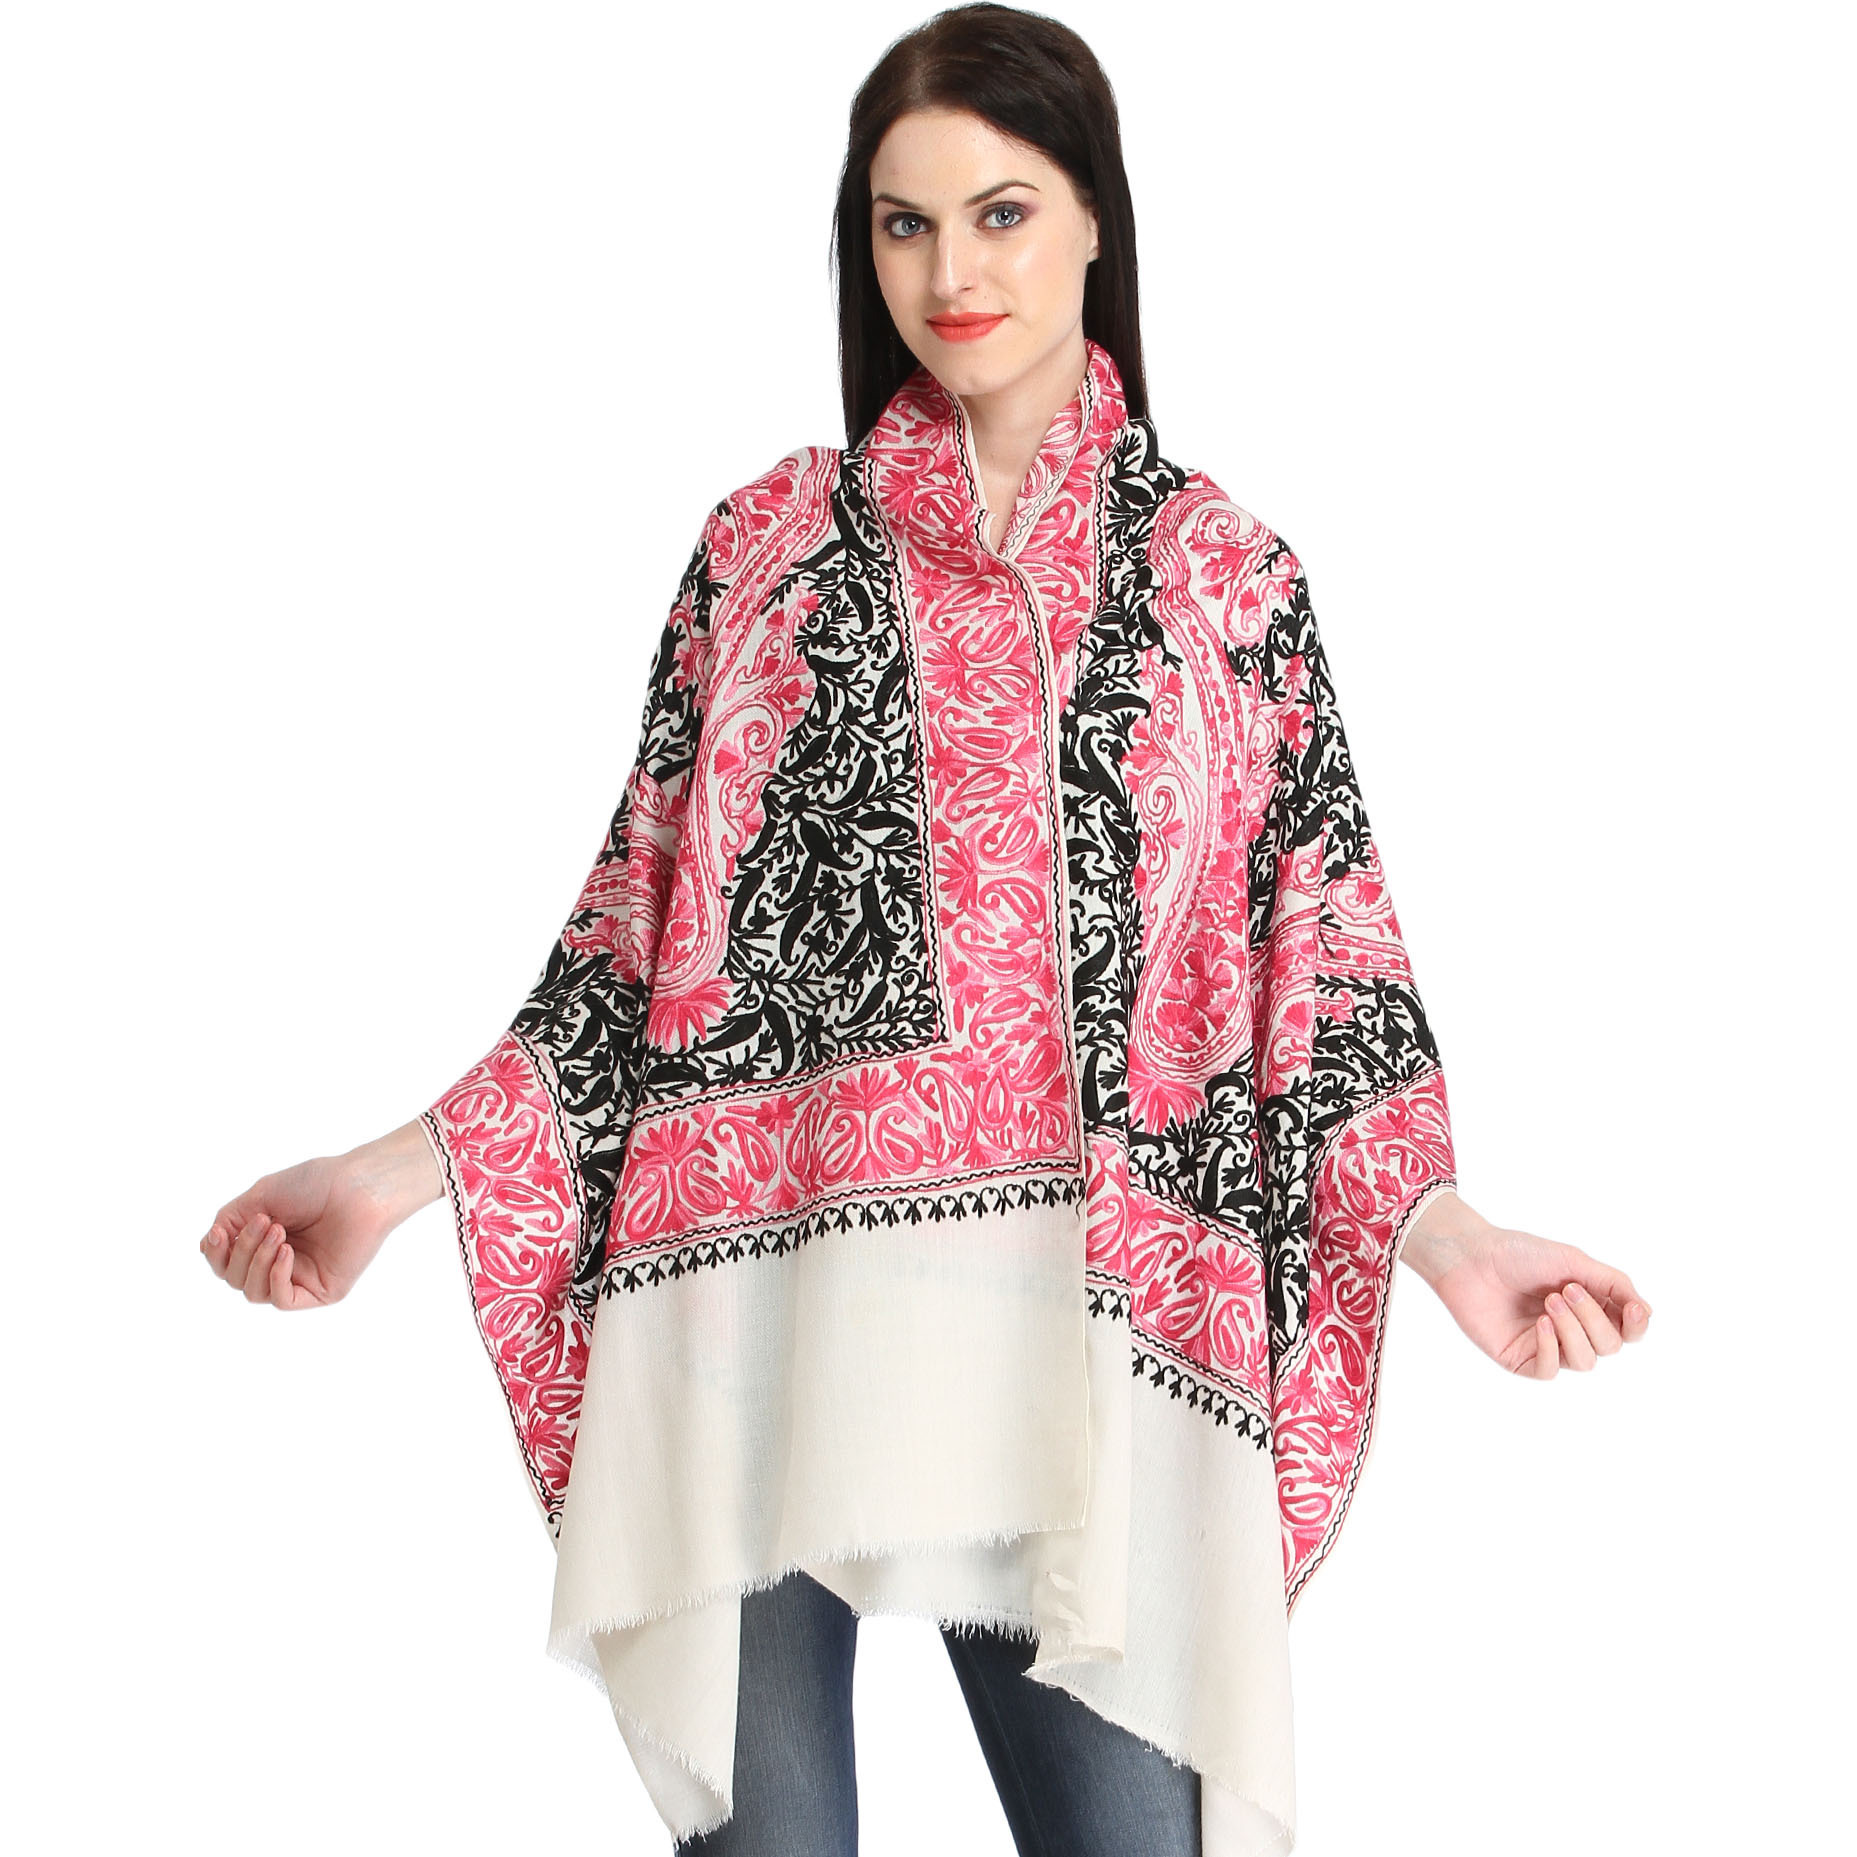 Off-White Stole from Kashmir with Ari-Embroidered Paisleys in Pink and Black Thread